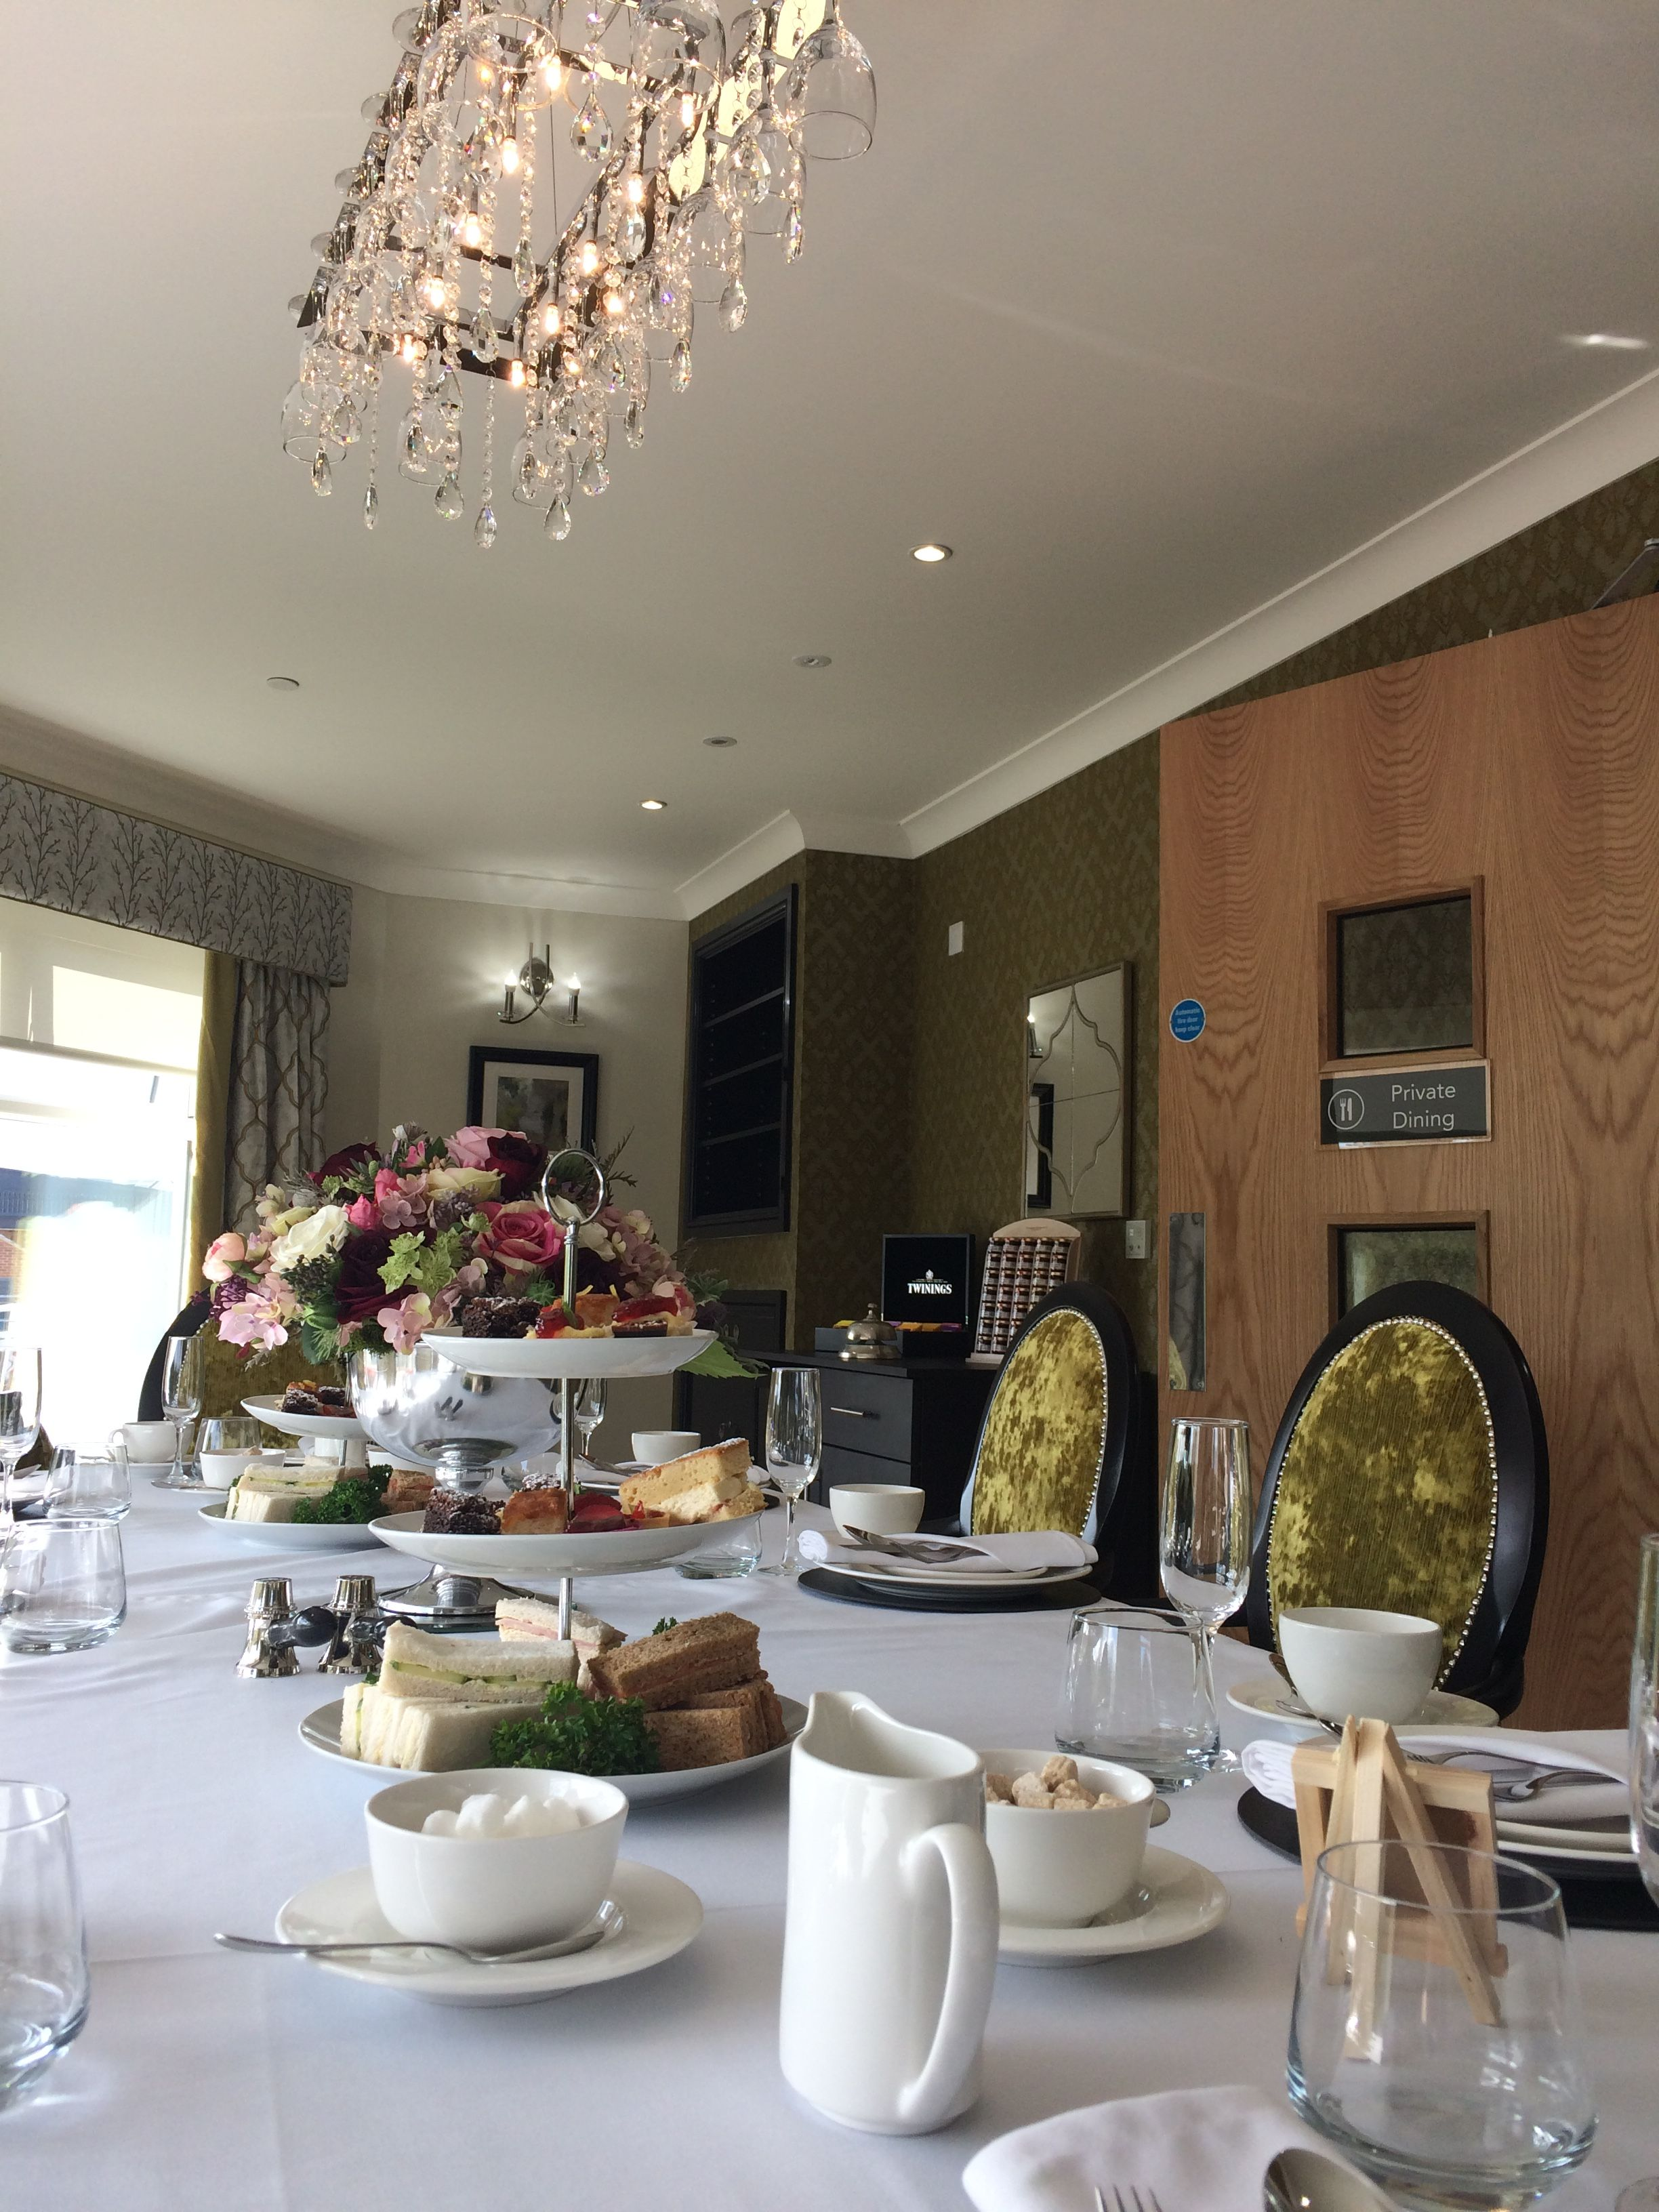 Lakeview Dining Room Pleasing Private Dining Room At Lakeview Lodge Care Home  Care Home Design Ideas